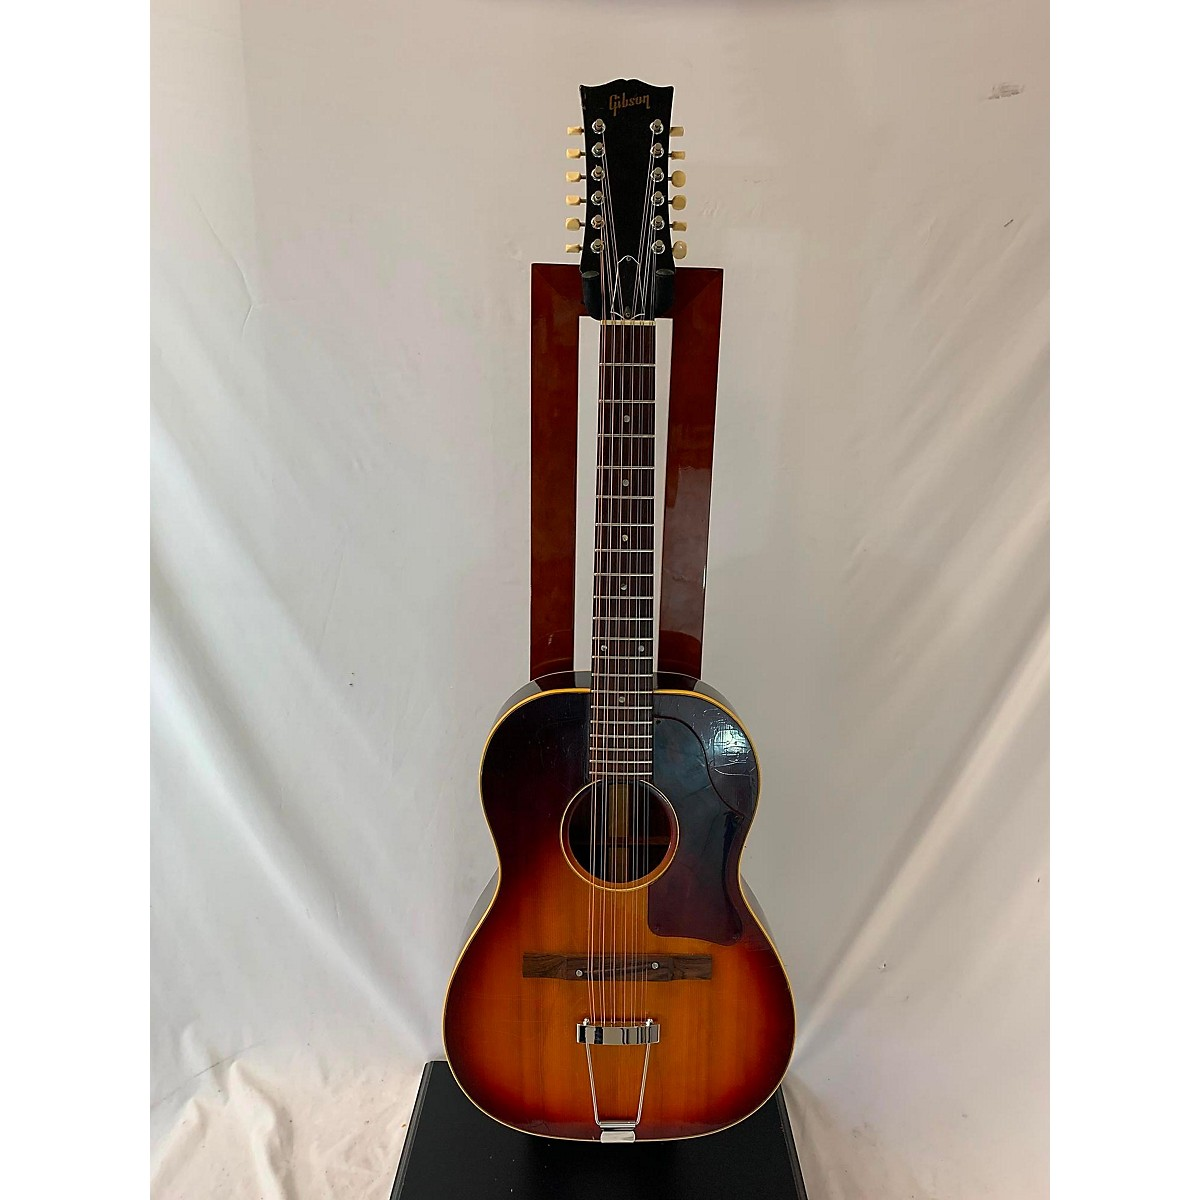 Gibson 1960s B25/12 12 String Acoustic Guitar